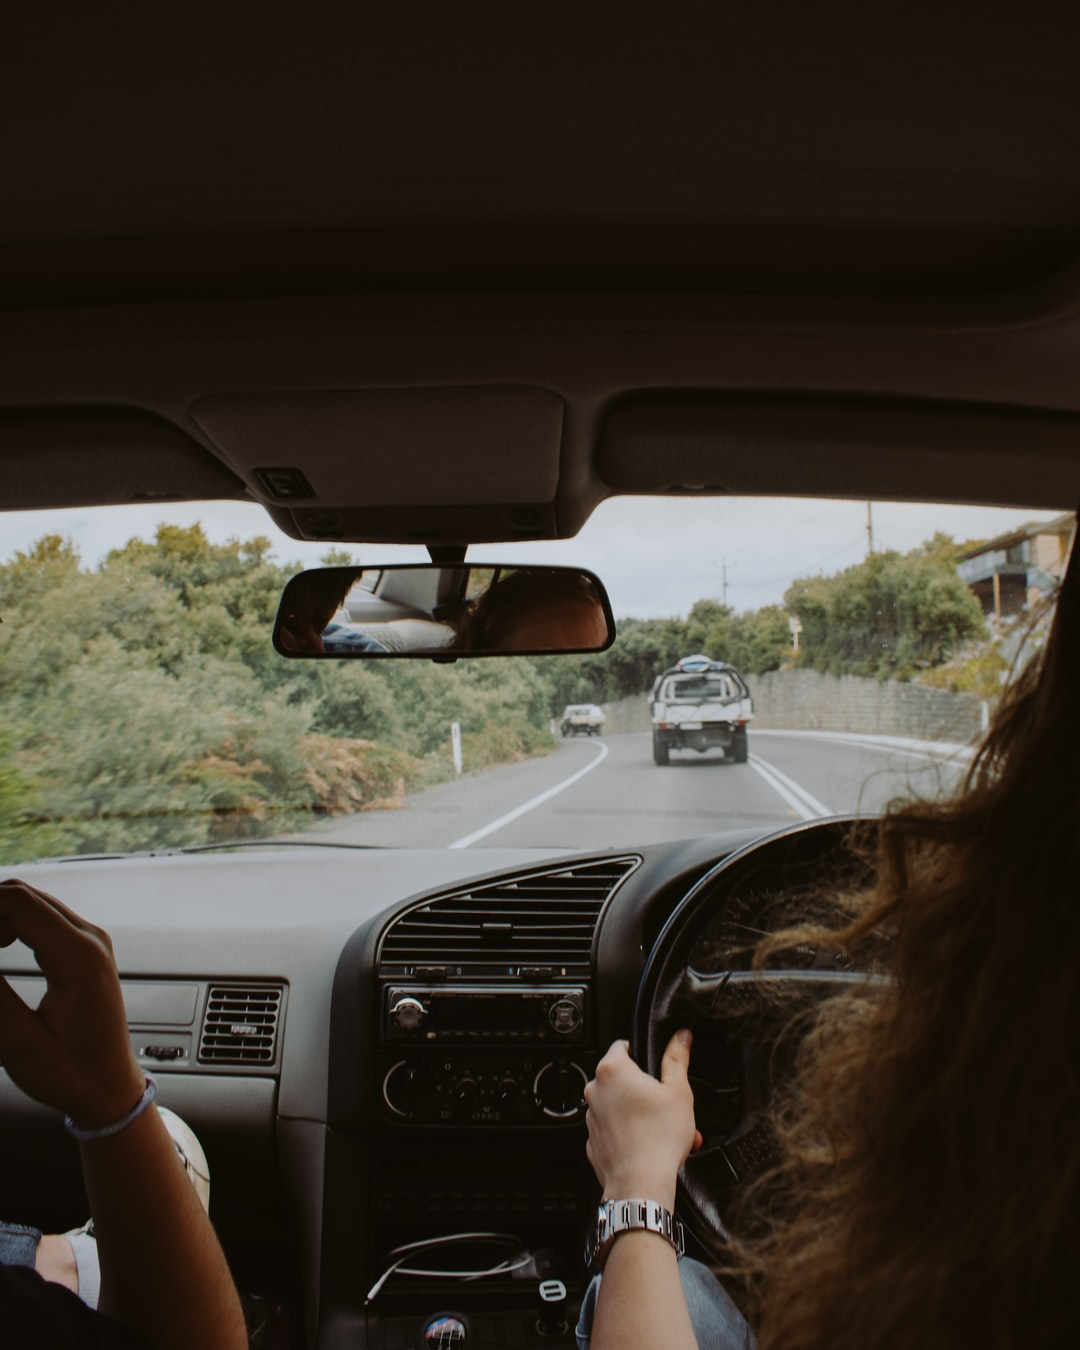 How can I keep my teen safe behind the wheel in summer?